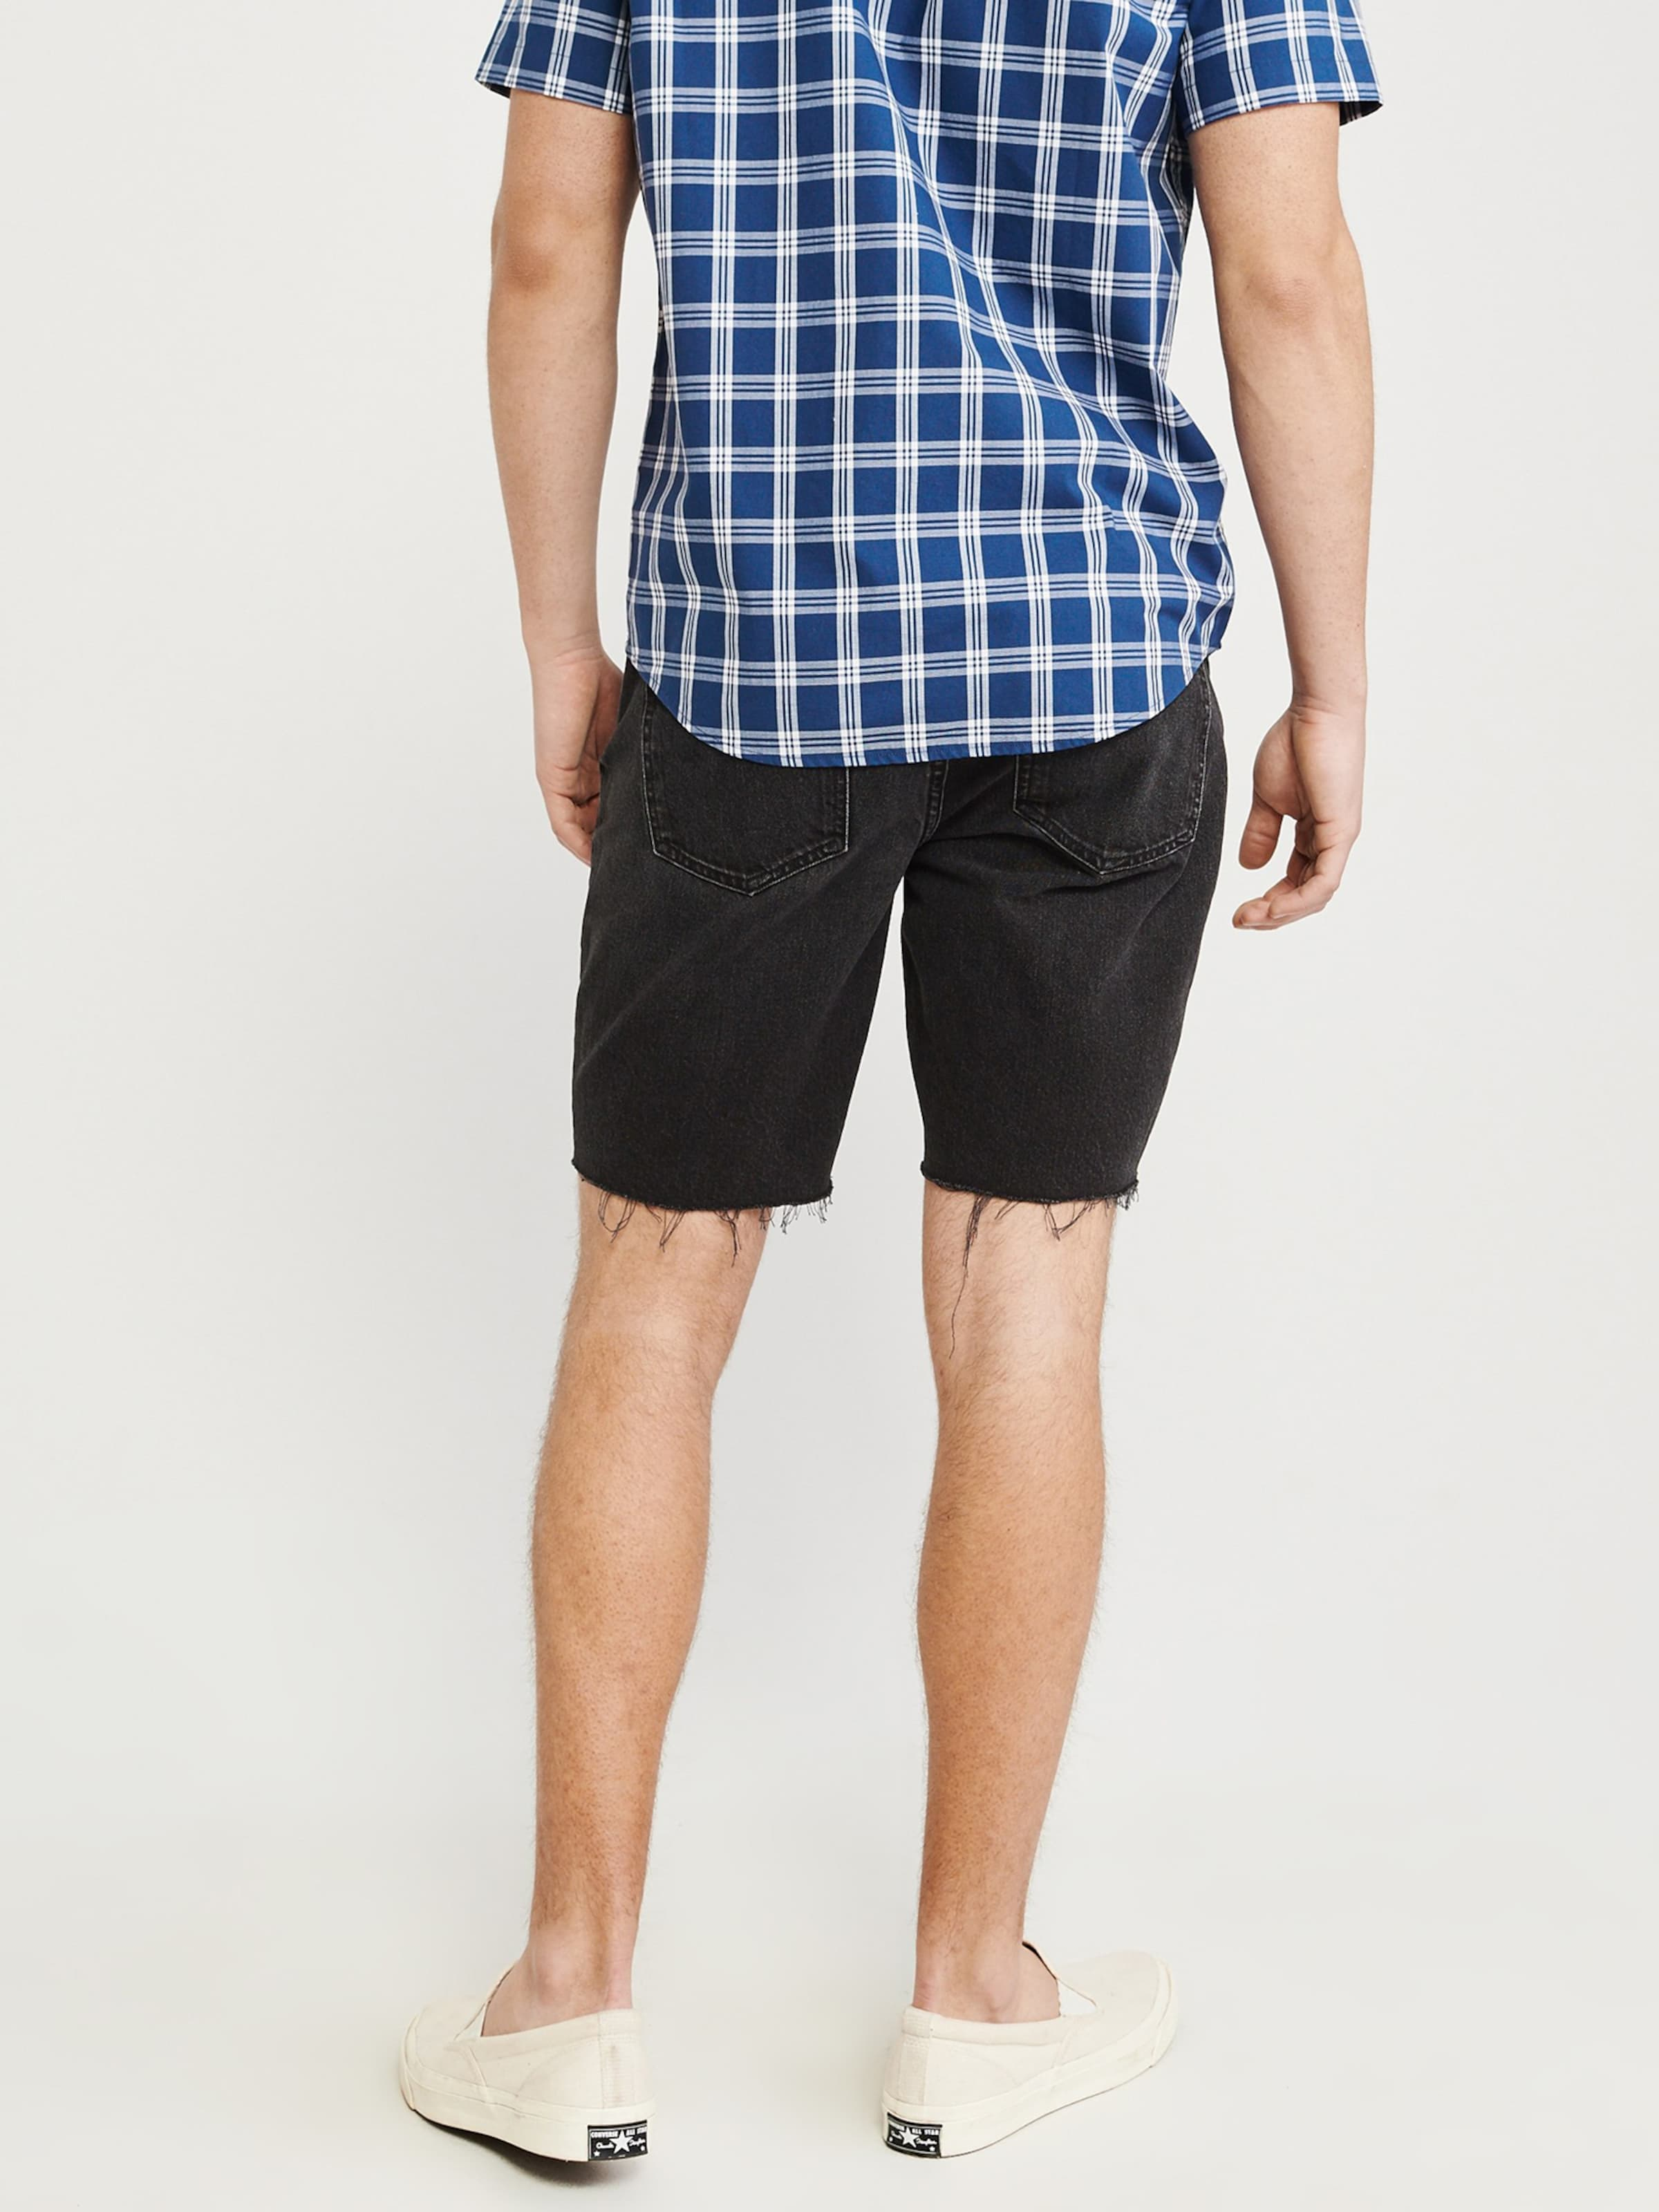 Fitch Abercrombieamp; Schwarz Hose Abercrombieamp; In mnwN08